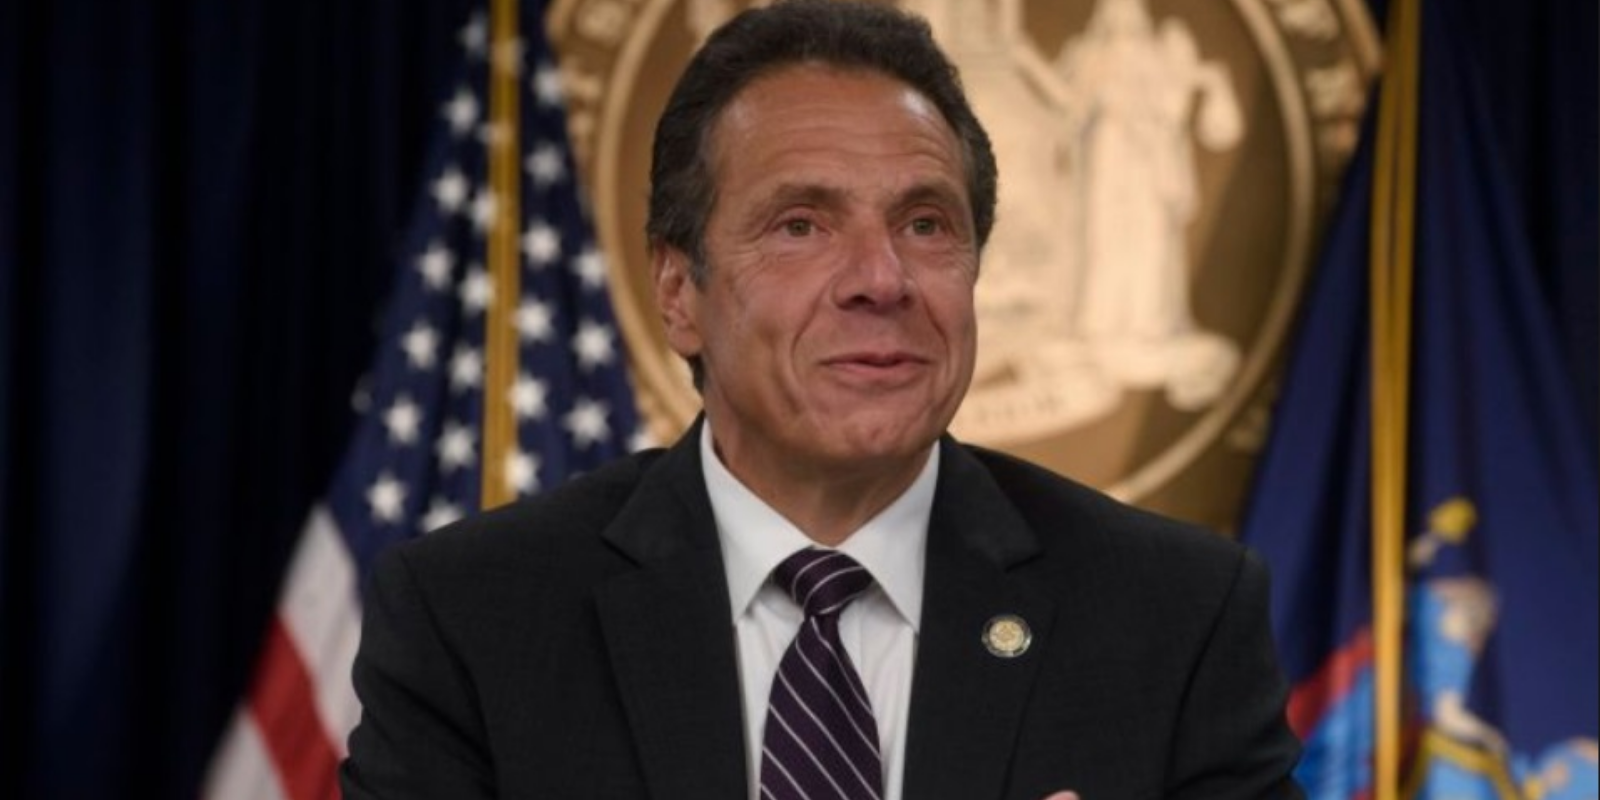 WATCH: NY Gov Cuomo says Santa will be good to him because he worked so hard